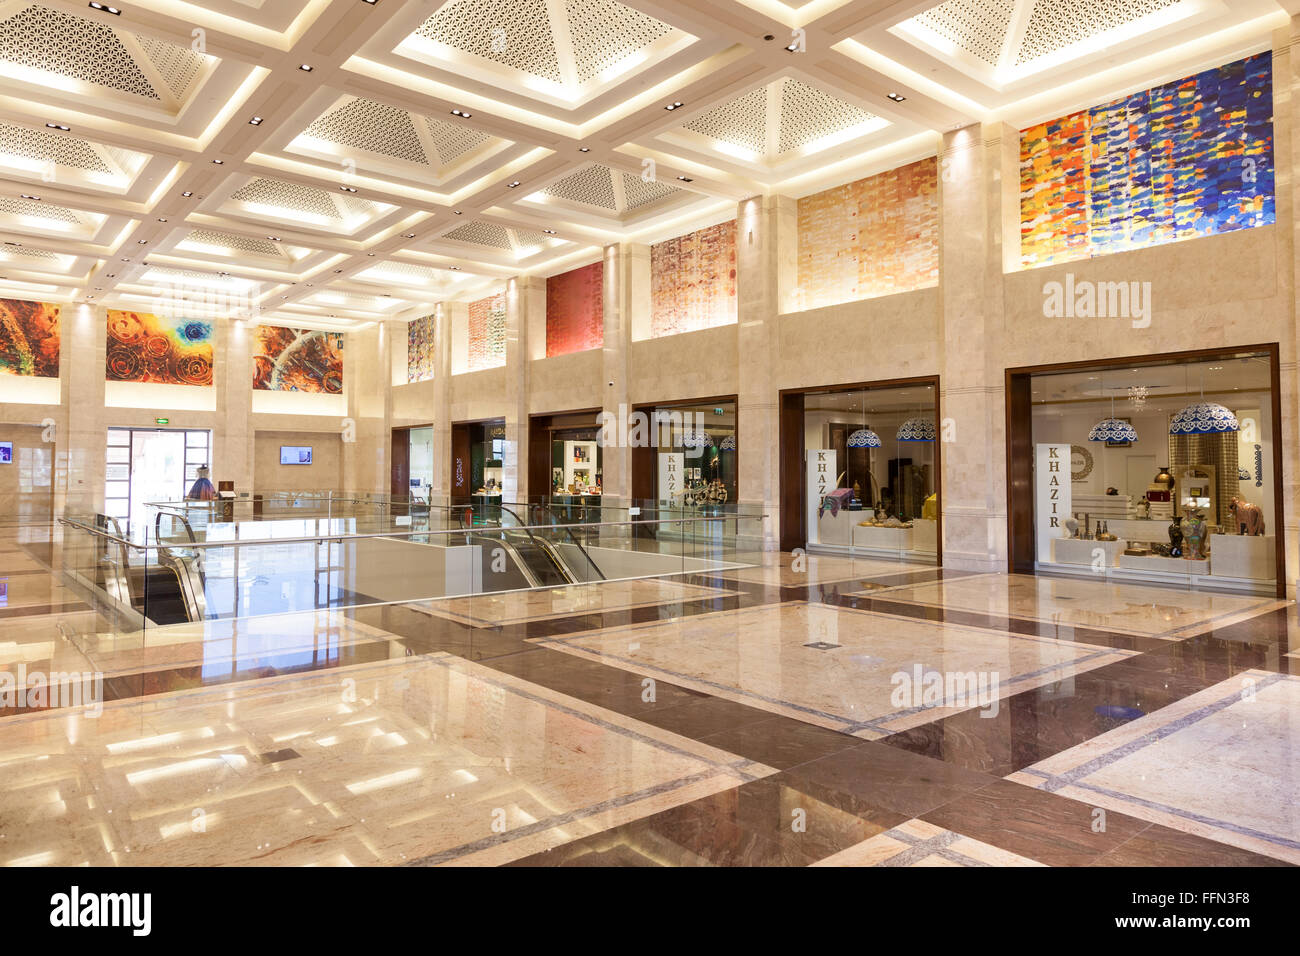 Luxury Mall in Muscat, Oman - Stock Image